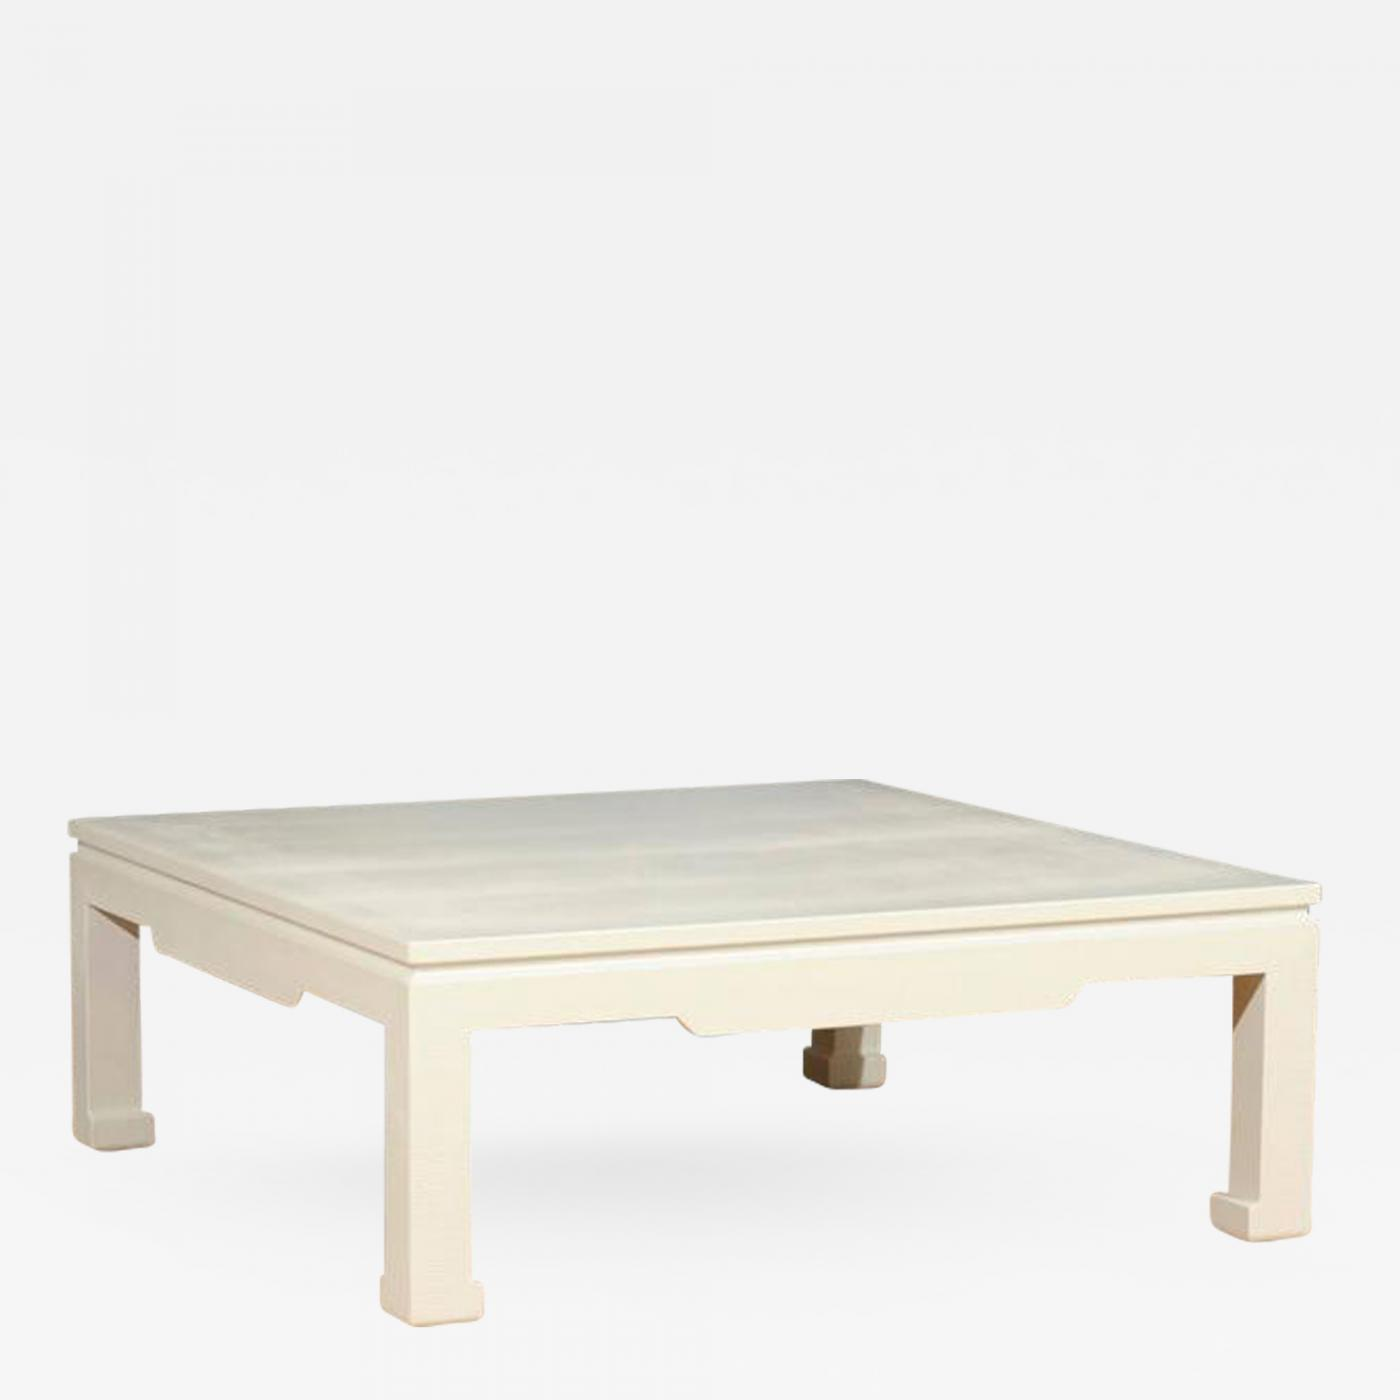 Exquisite Vintage Snake Skin Coffee Table in Cream Lacquer